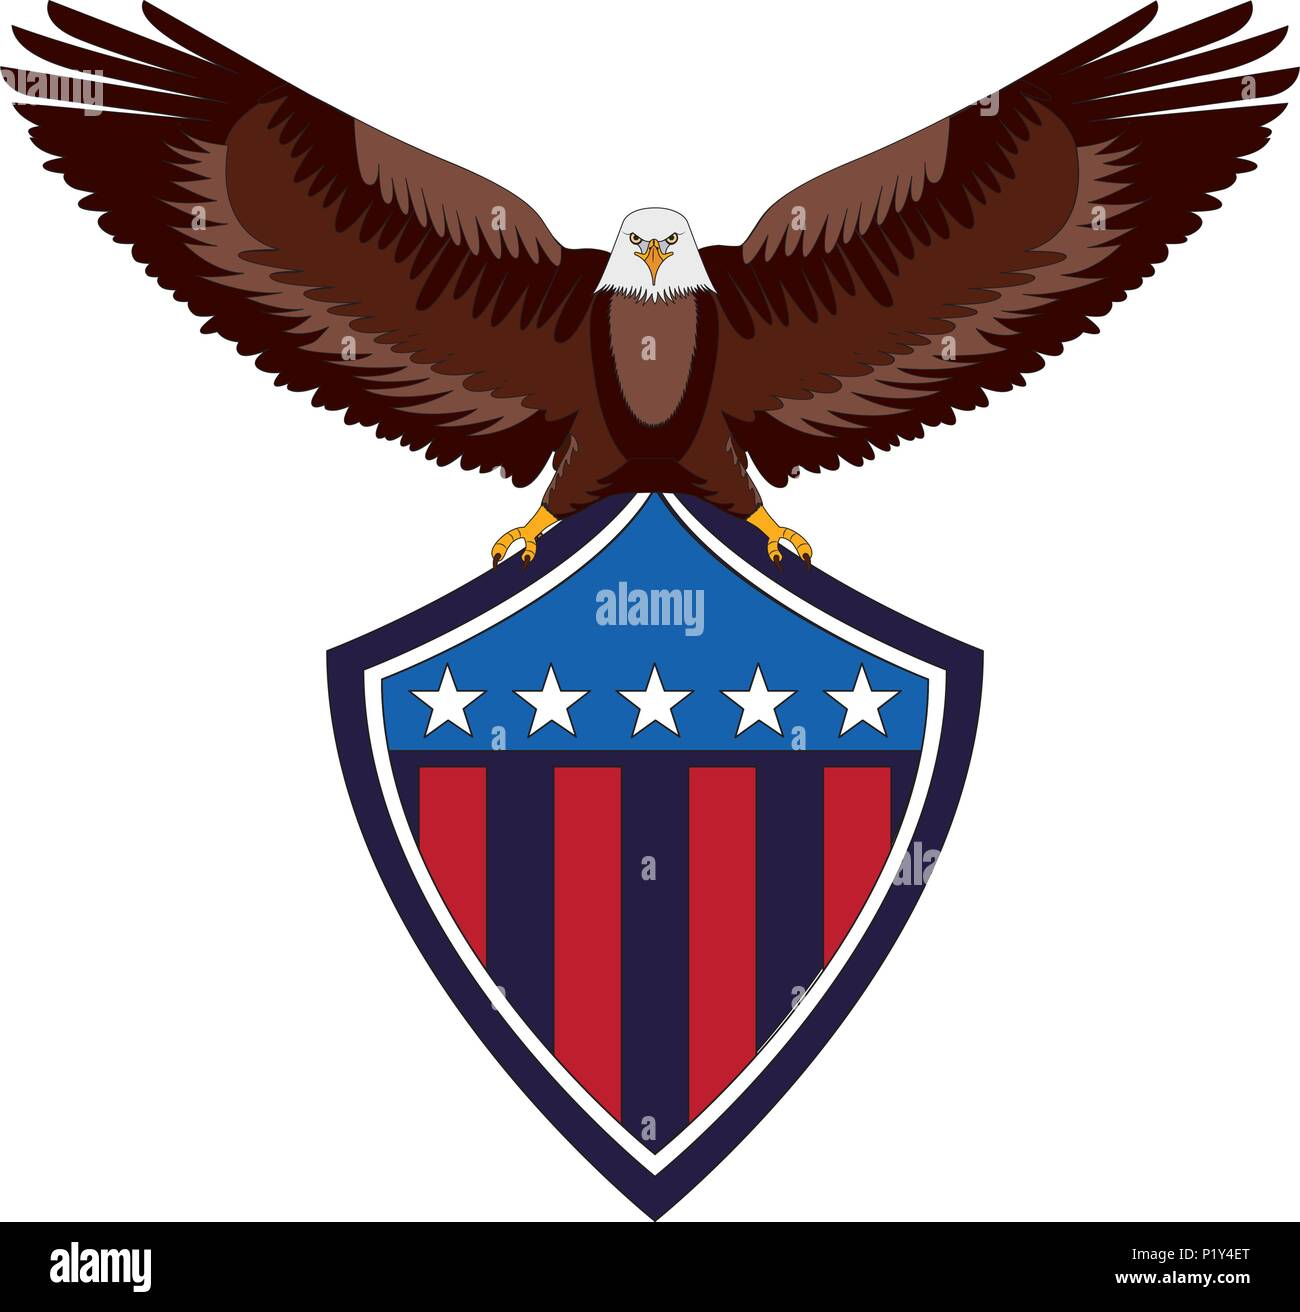 American Eagle Flag Shield National Symbol Vector Illustration Stock